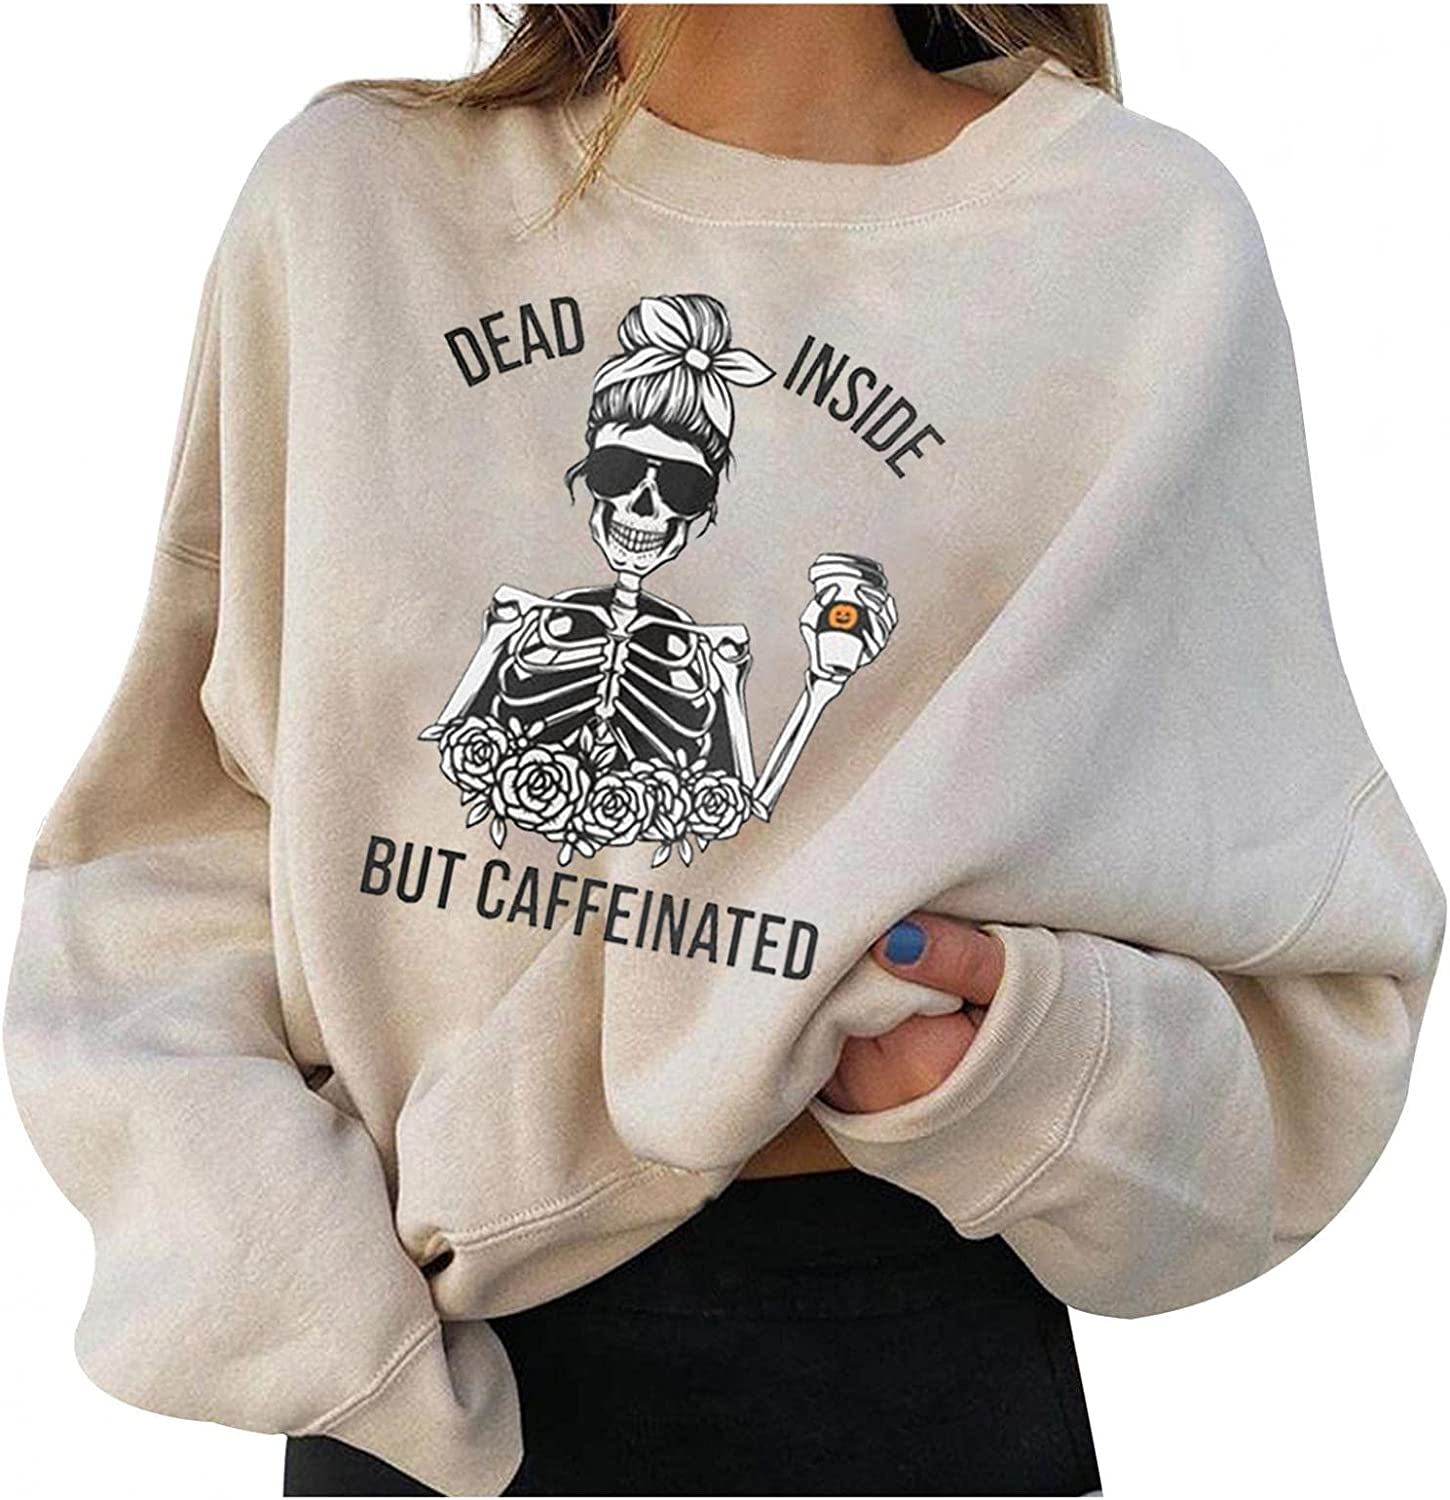 AIHOU Halloween Shirts for Women Crewneck Sweatshirt Witch Graphic Shirts Novelty Long Sleeve Pullover Sweaters Tops